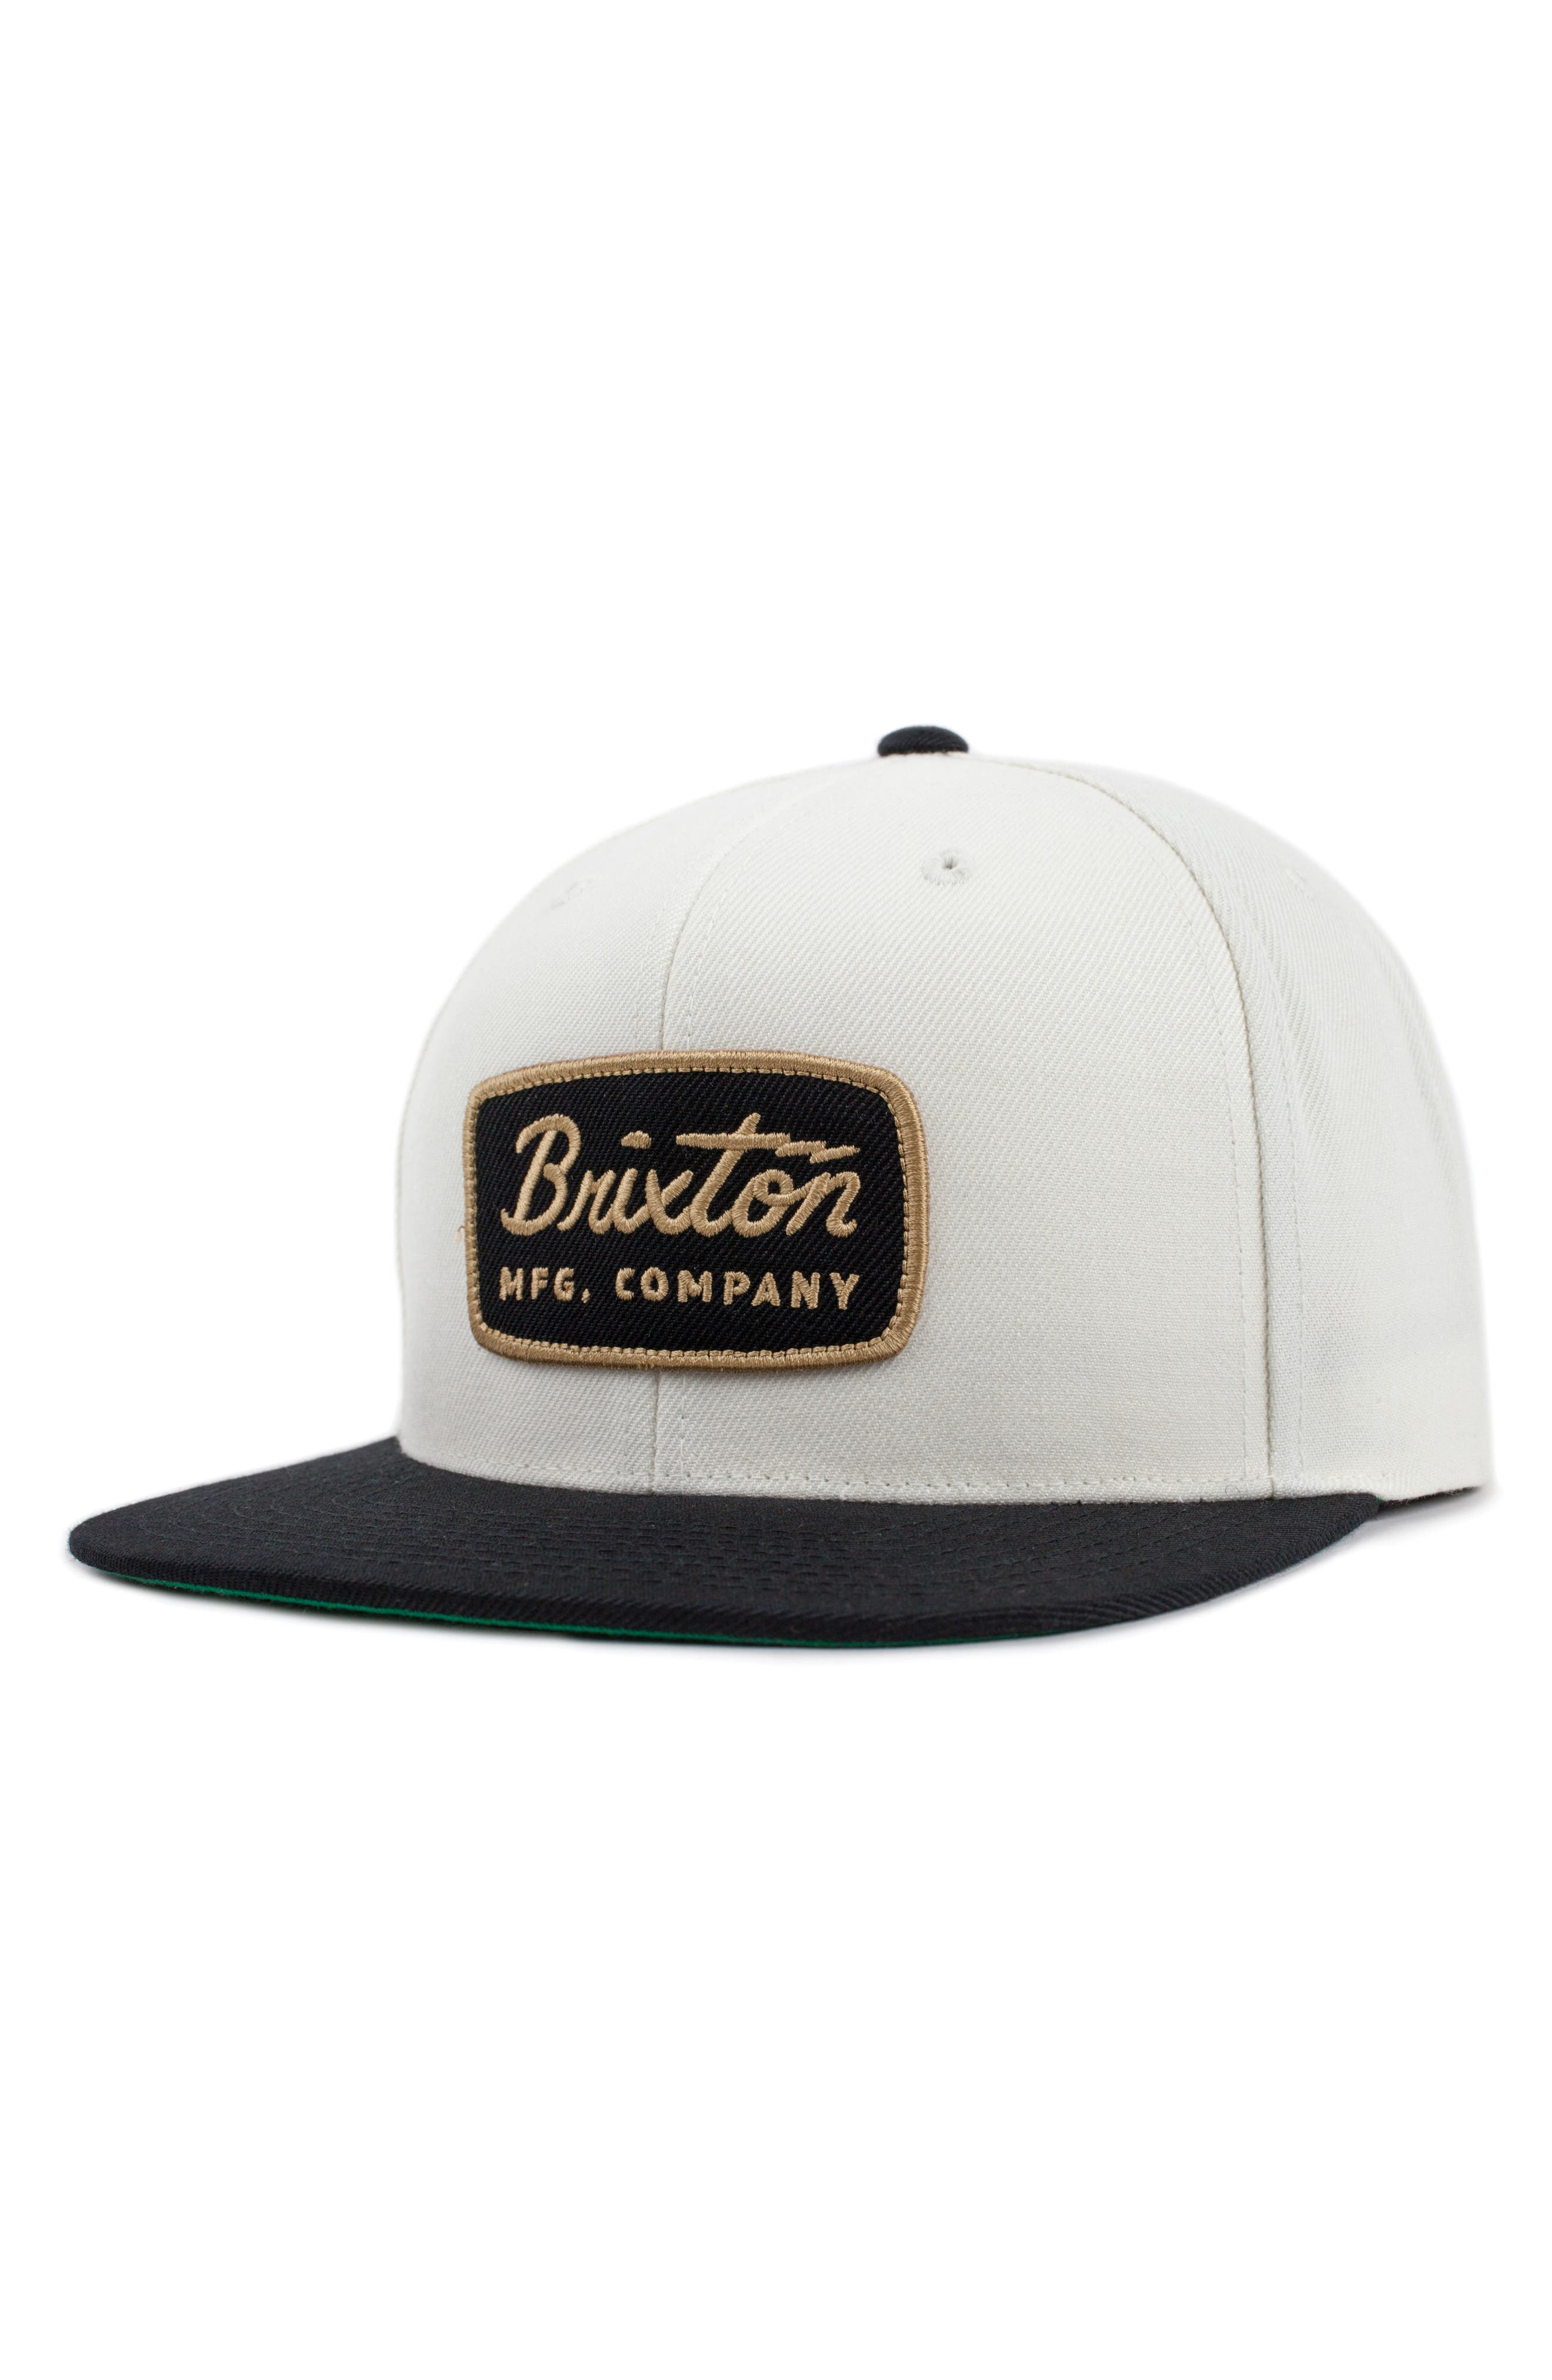 45c8a9a4bf9b0 ... promo code for mens brixton hats hats for men nordstrom 27629 37019